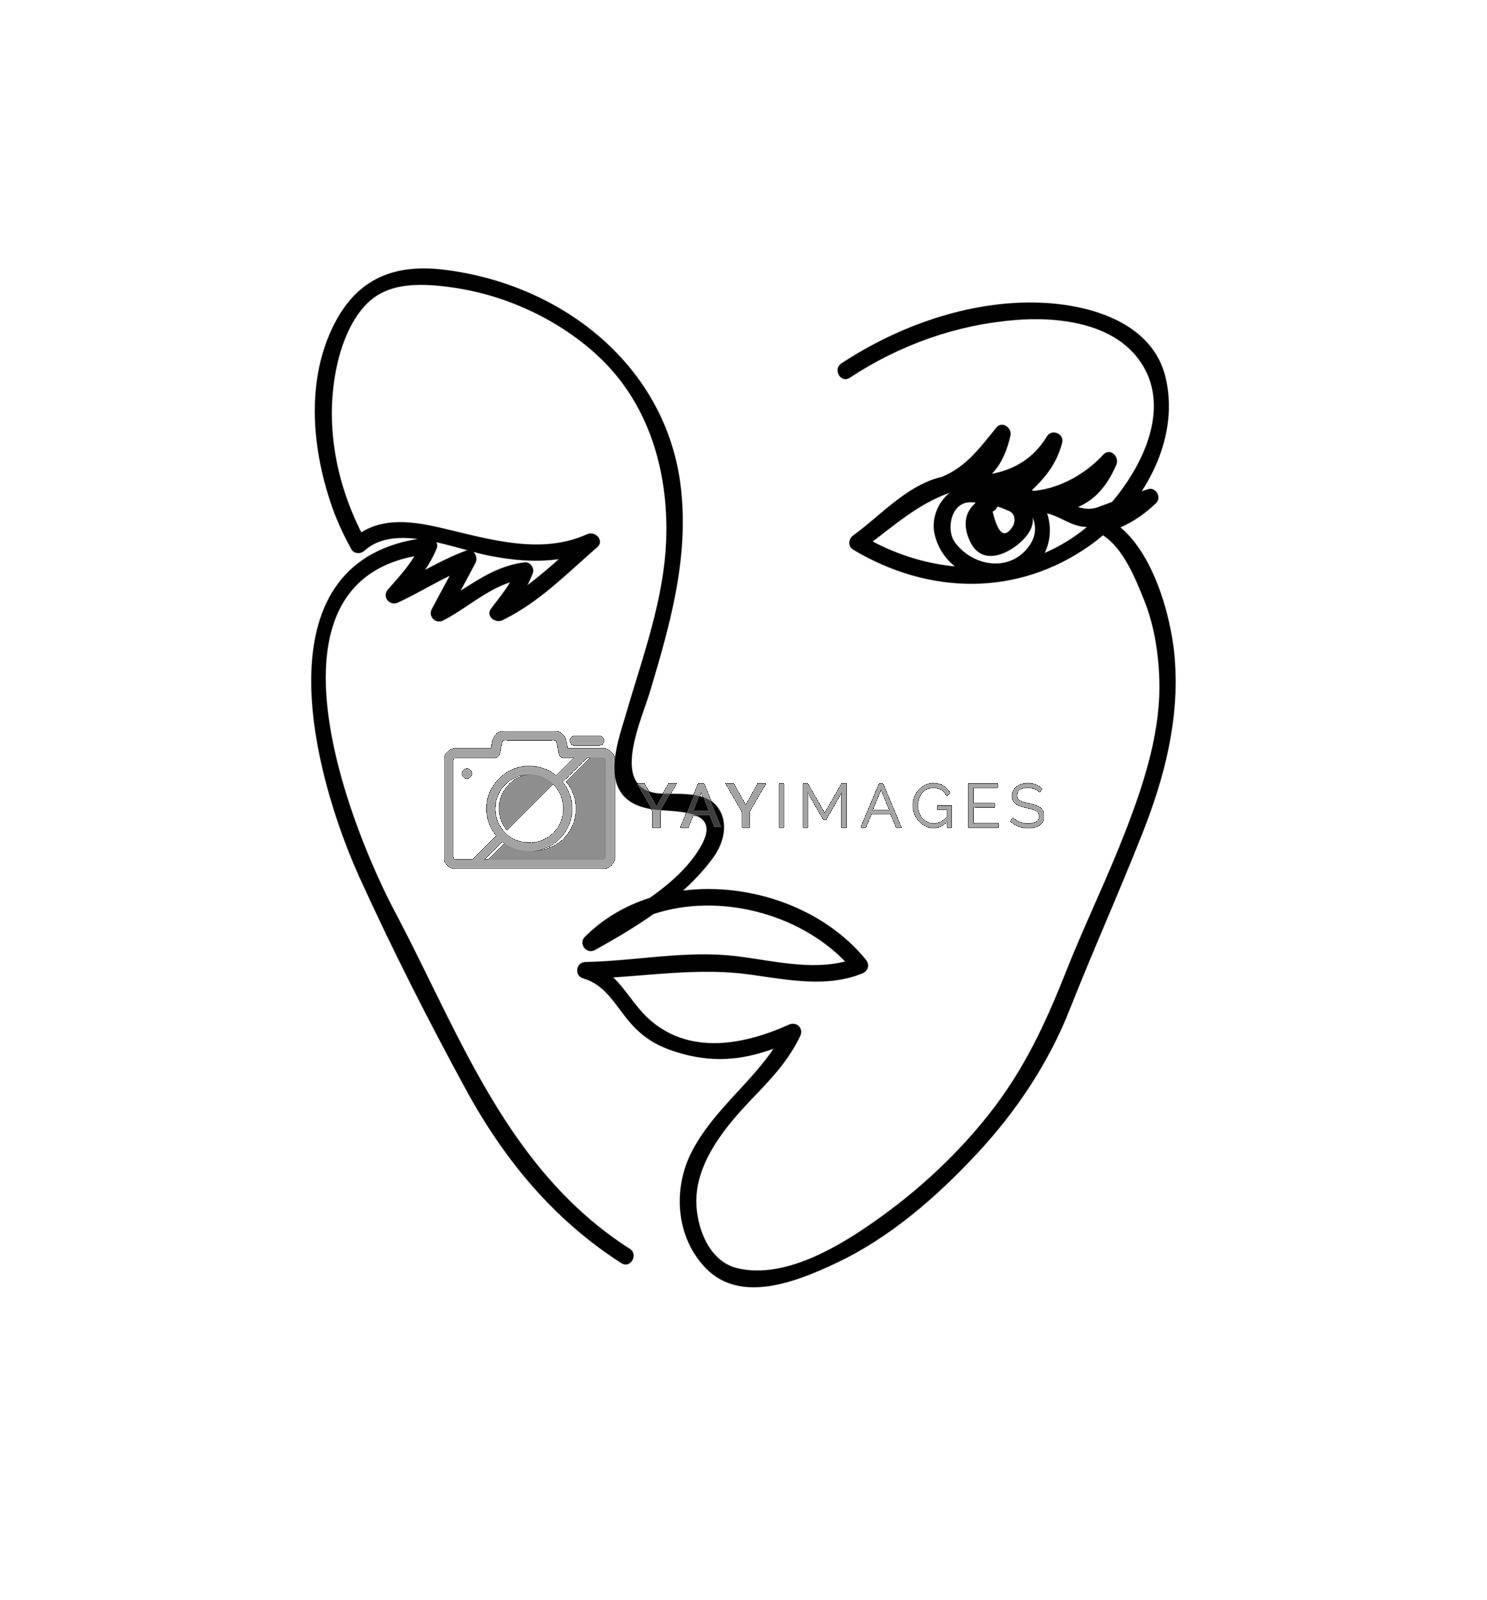 Abstract woman face. Black and white hand drawn line art. Outline vector illustration.